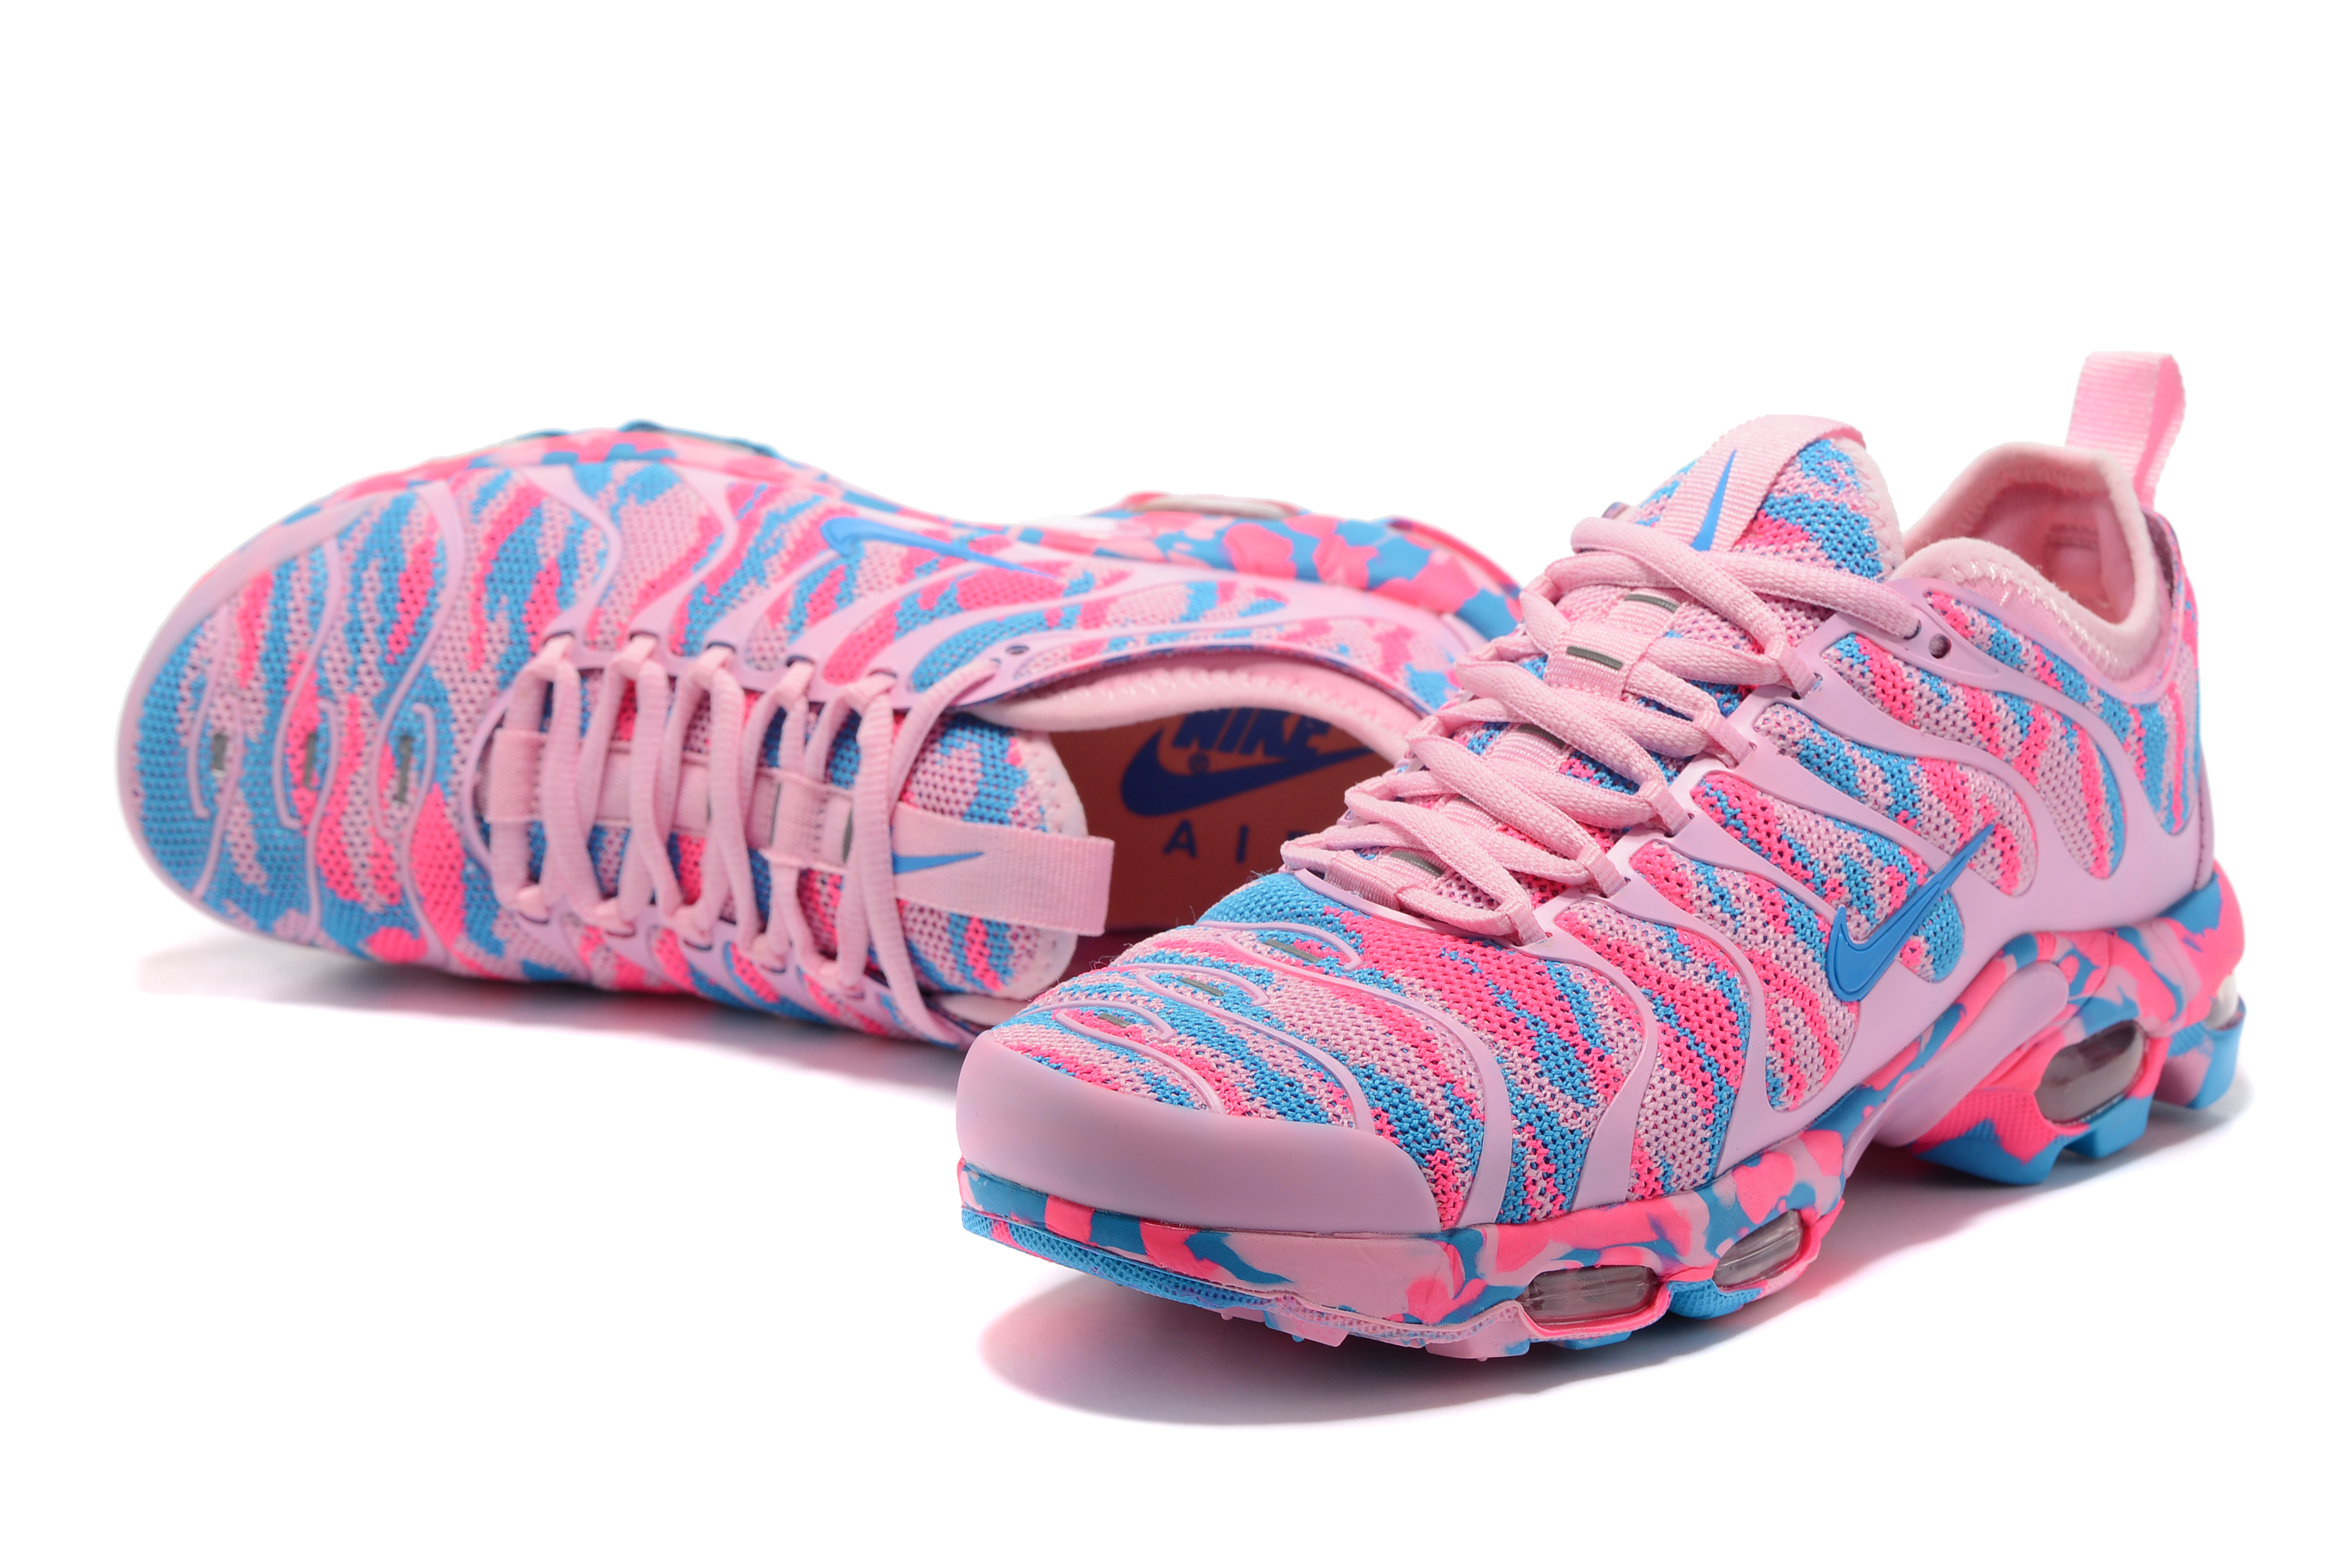 Nike Air Max Plus TN Camo Pink Shoes